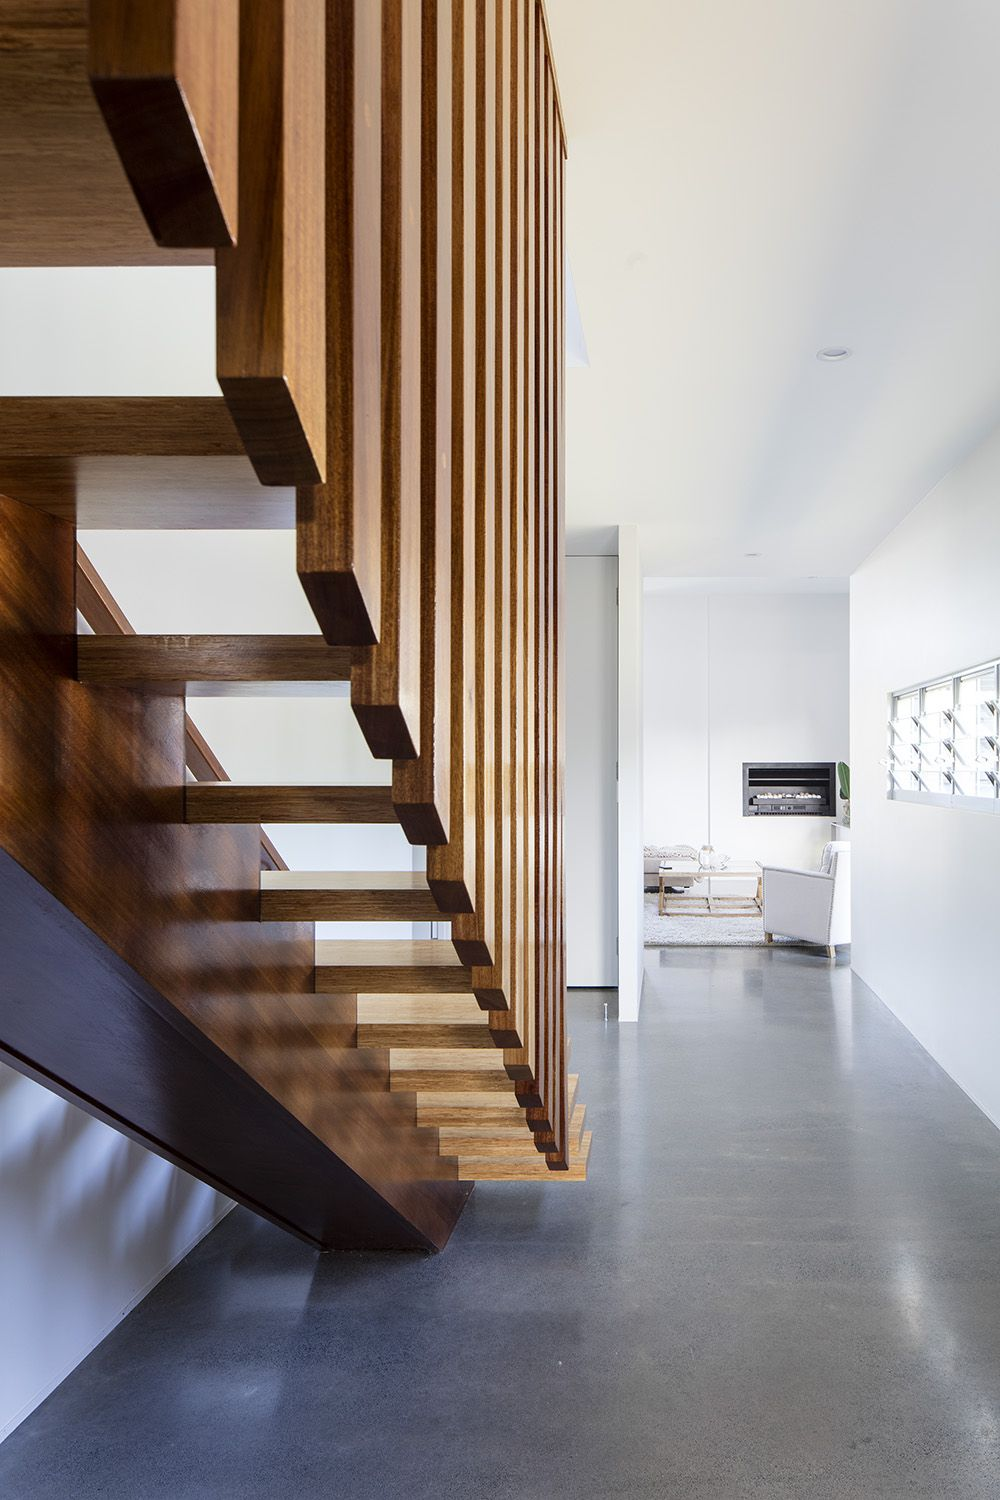 Custom wooden staircase design by immackulate designer homes the dicky beach project located on sunshine coast qld australia also rh pinterest